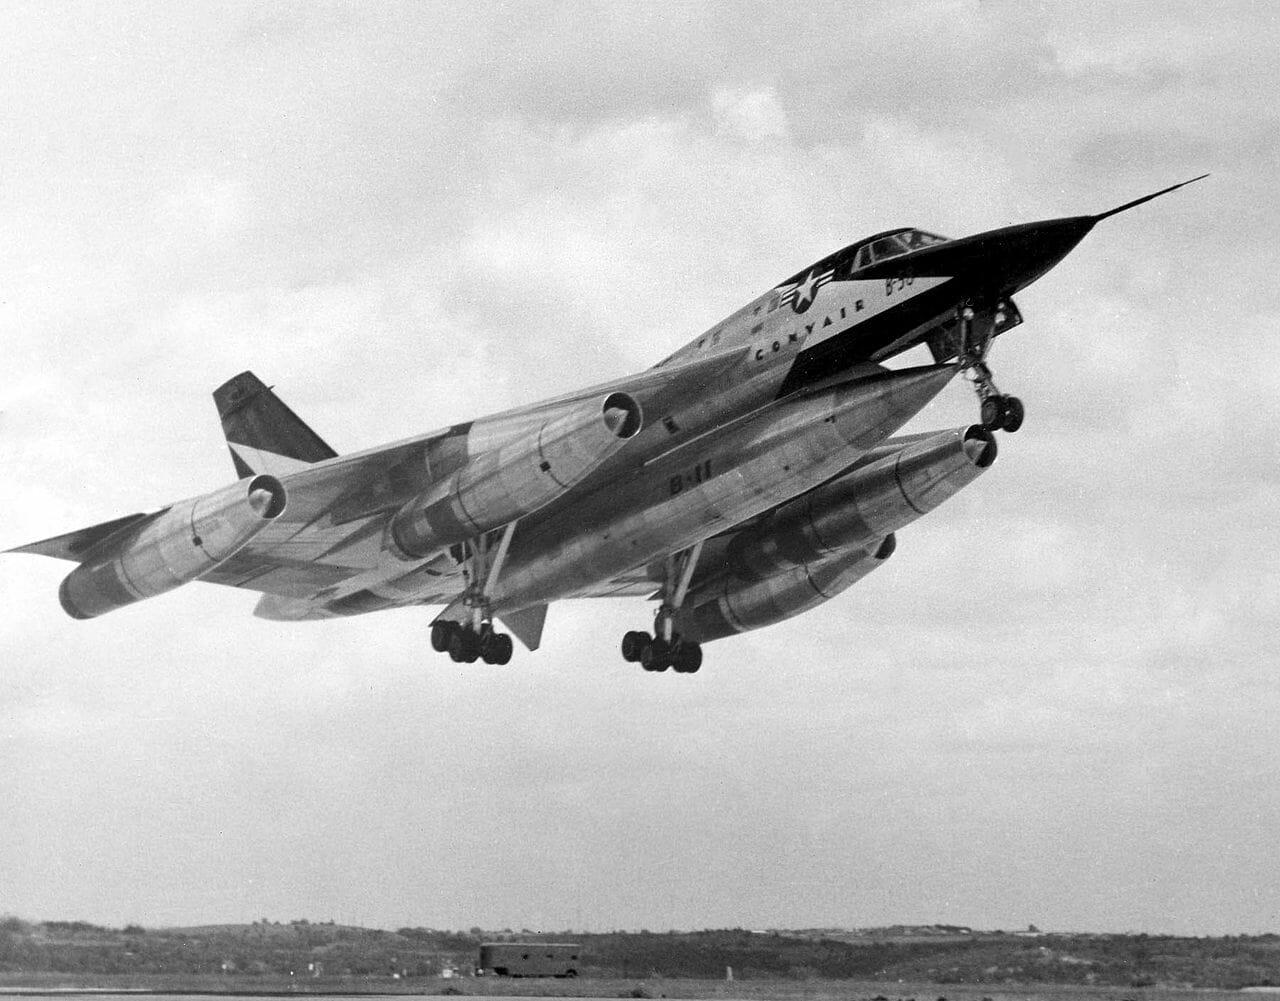 Convair Thought to Transform the B-58 into a Supersonic Airliner. And to Store 5 Passengers in Hustler's MB-1C Pod.